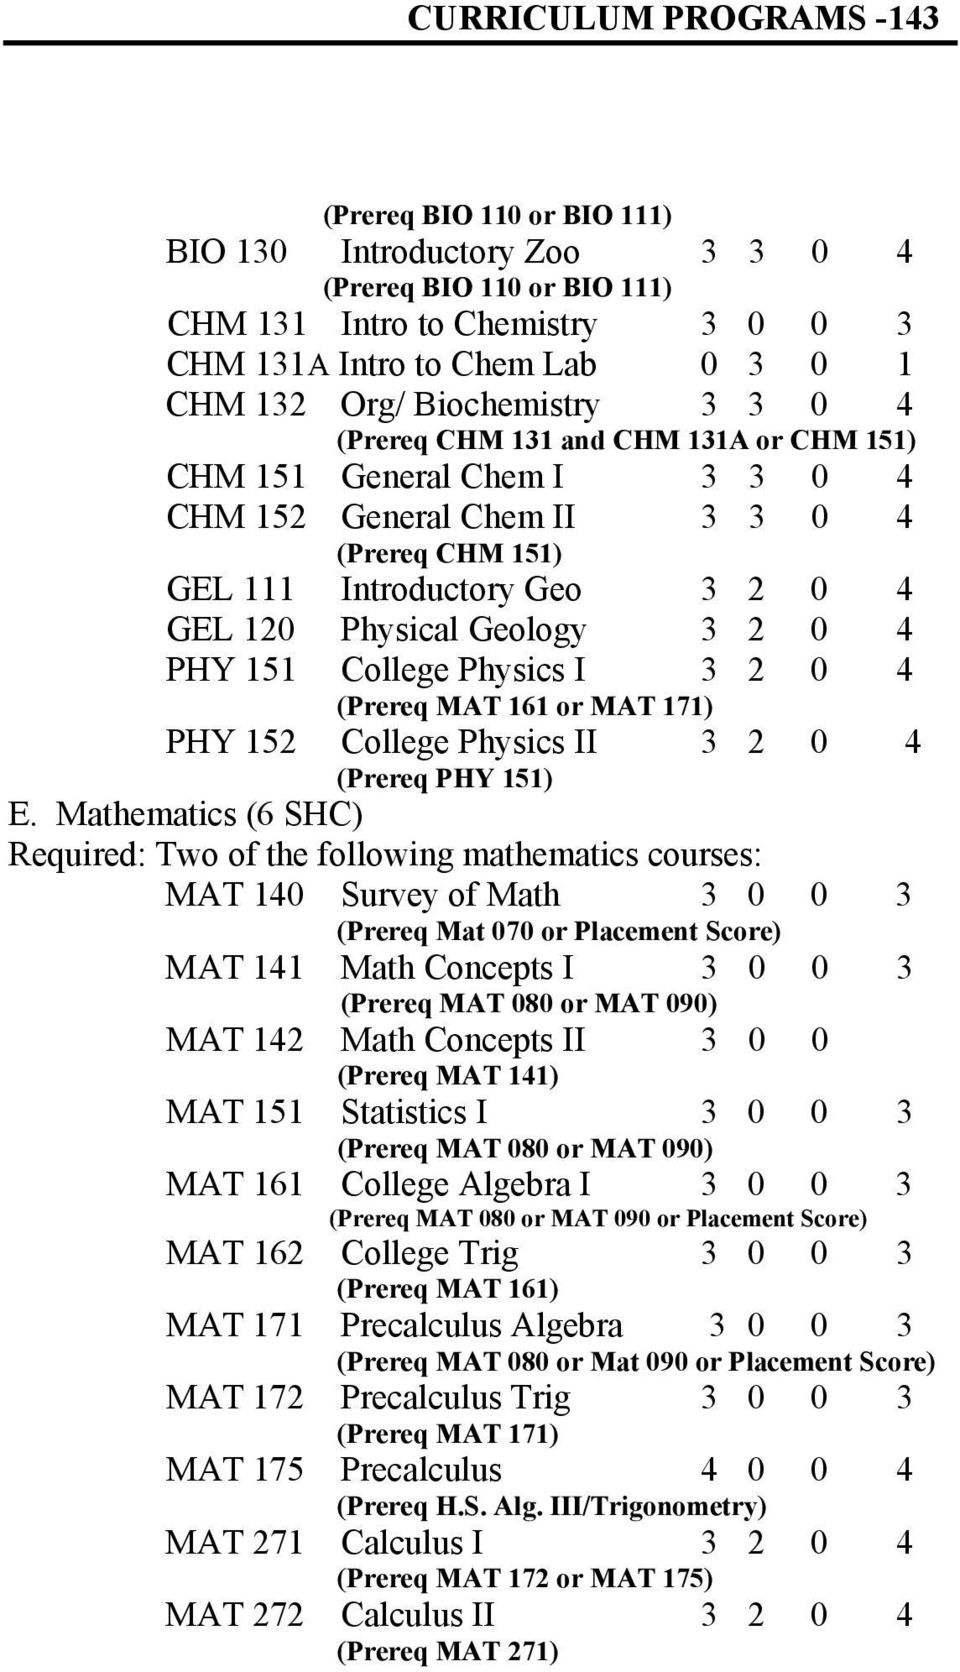 3 2 0 4 PHY 151 College Physics I 3 2 0 4 (Prereq MAT 161 or MAT 171) PHY 152 College Physics II (Prereq PHY 151) 3 2 0 4 E.